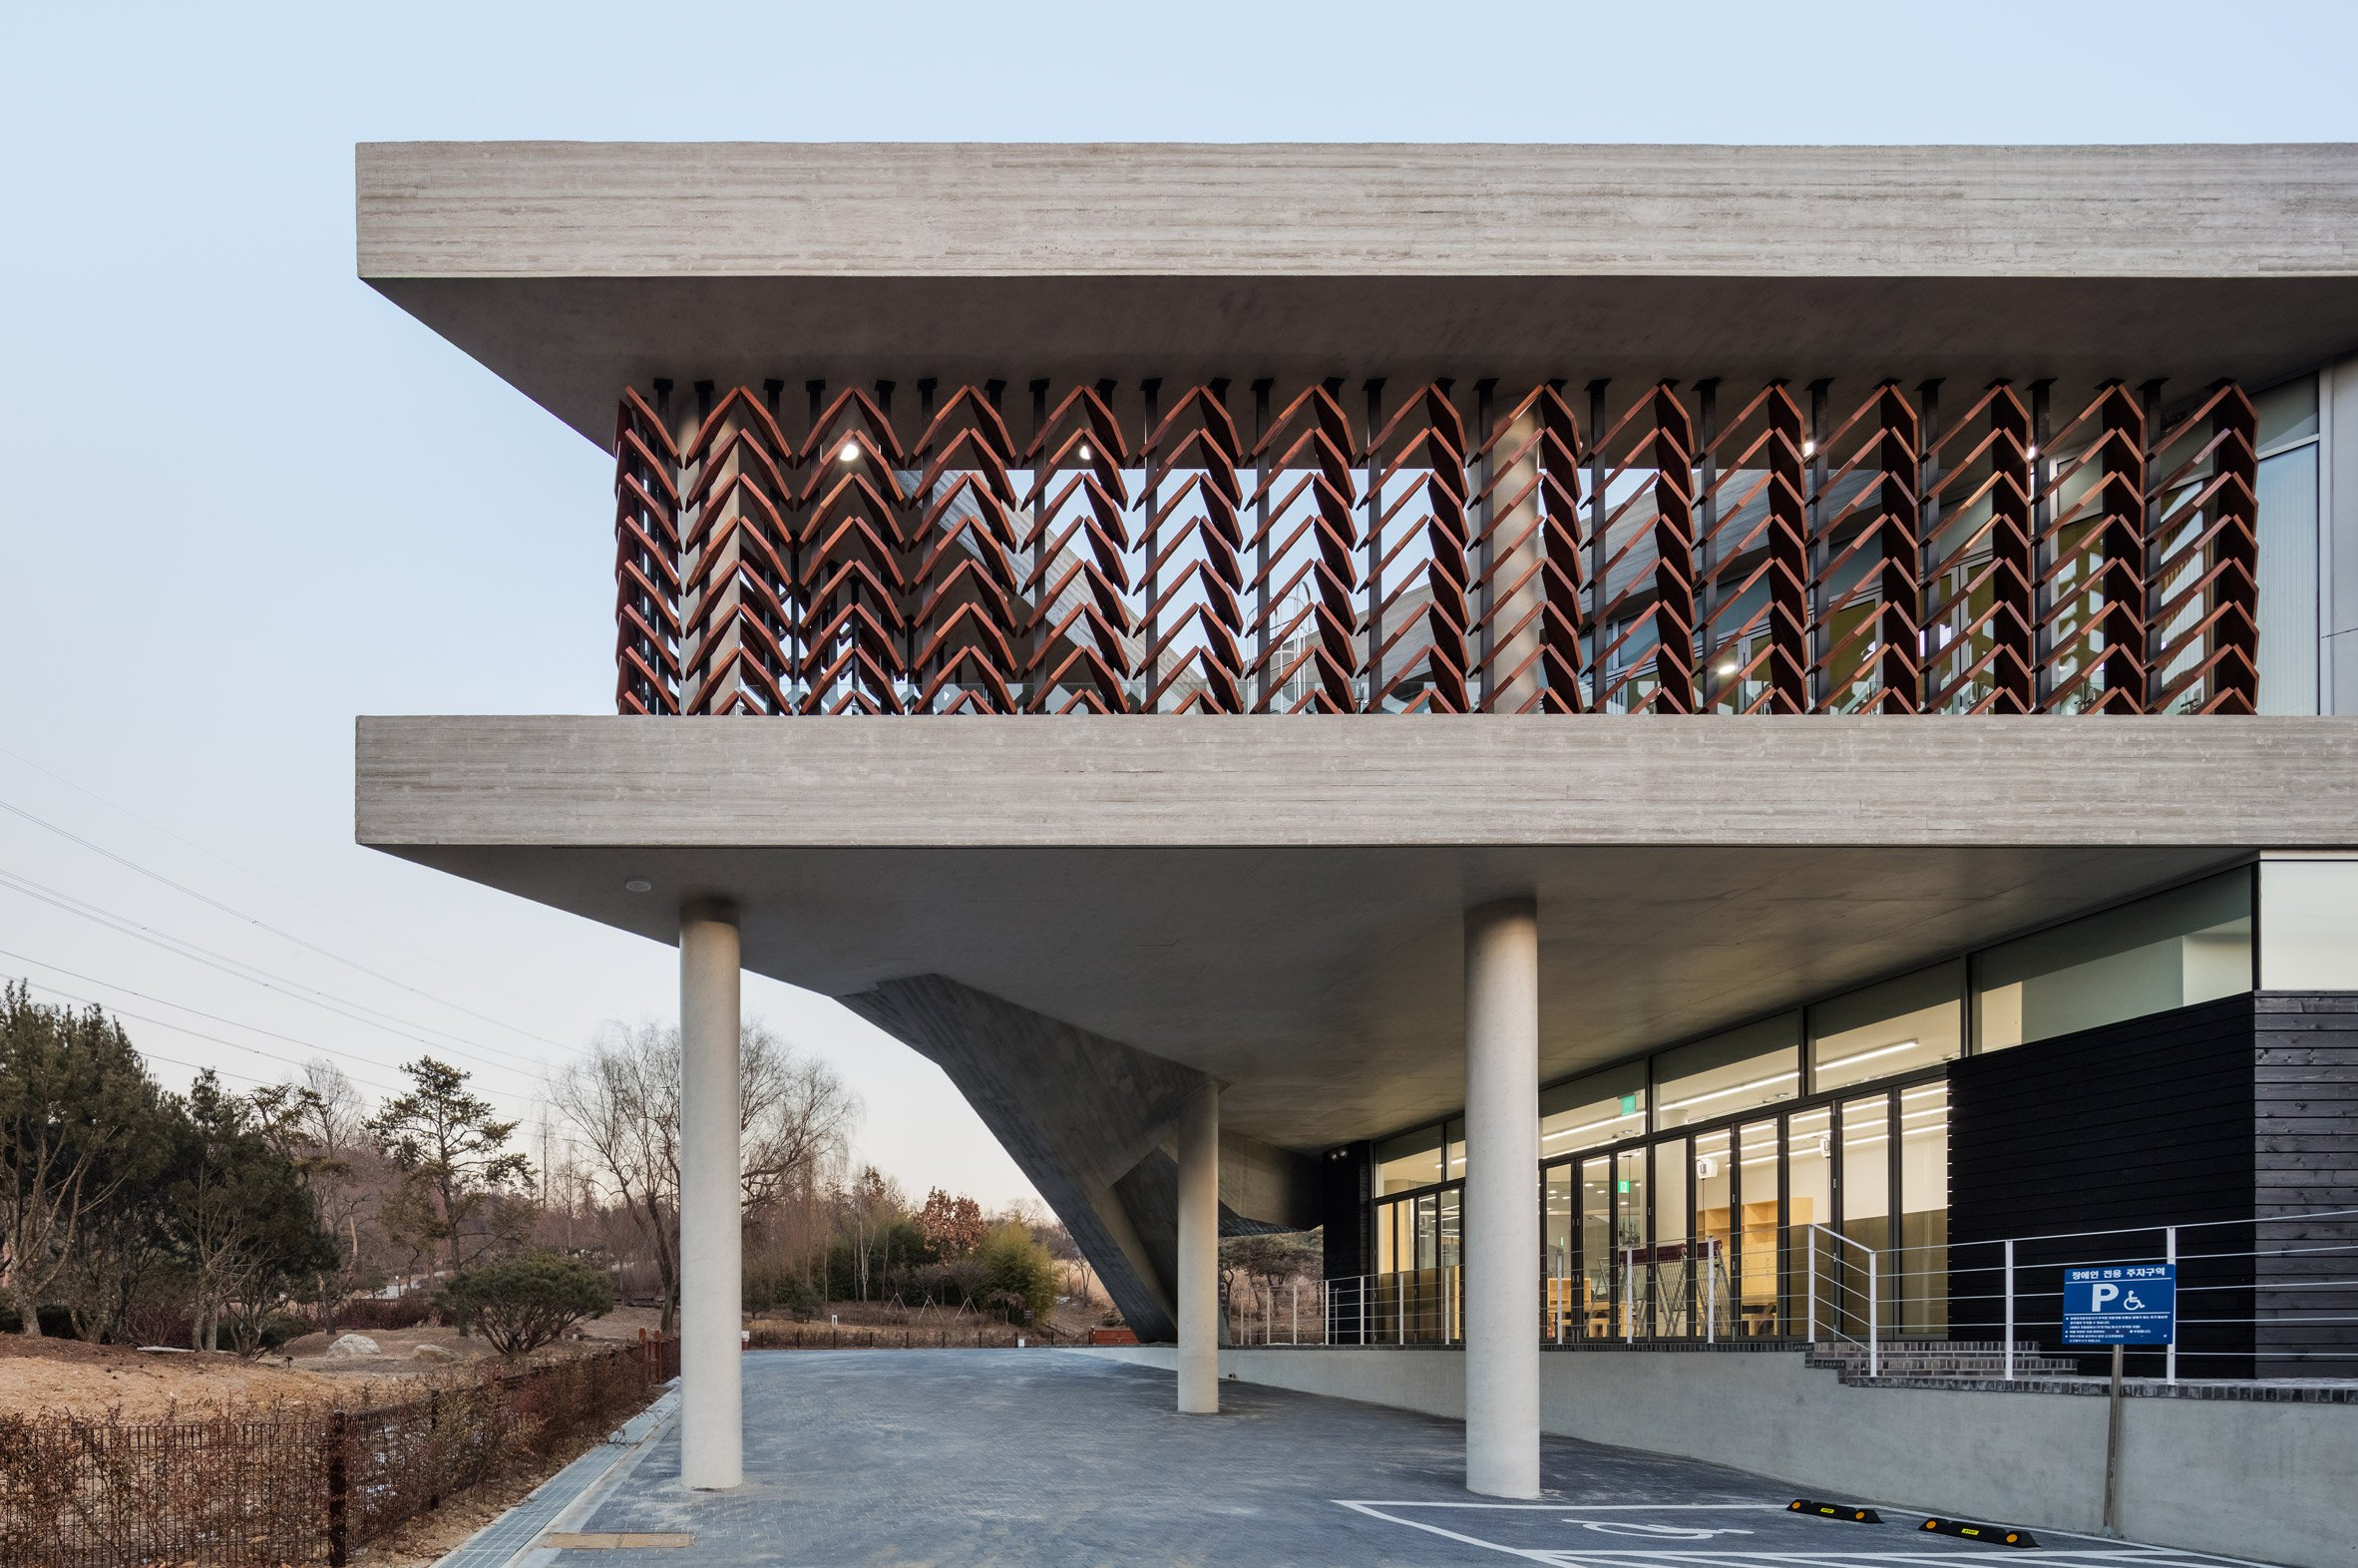 Moveable wooden screens are set into concrete facades of